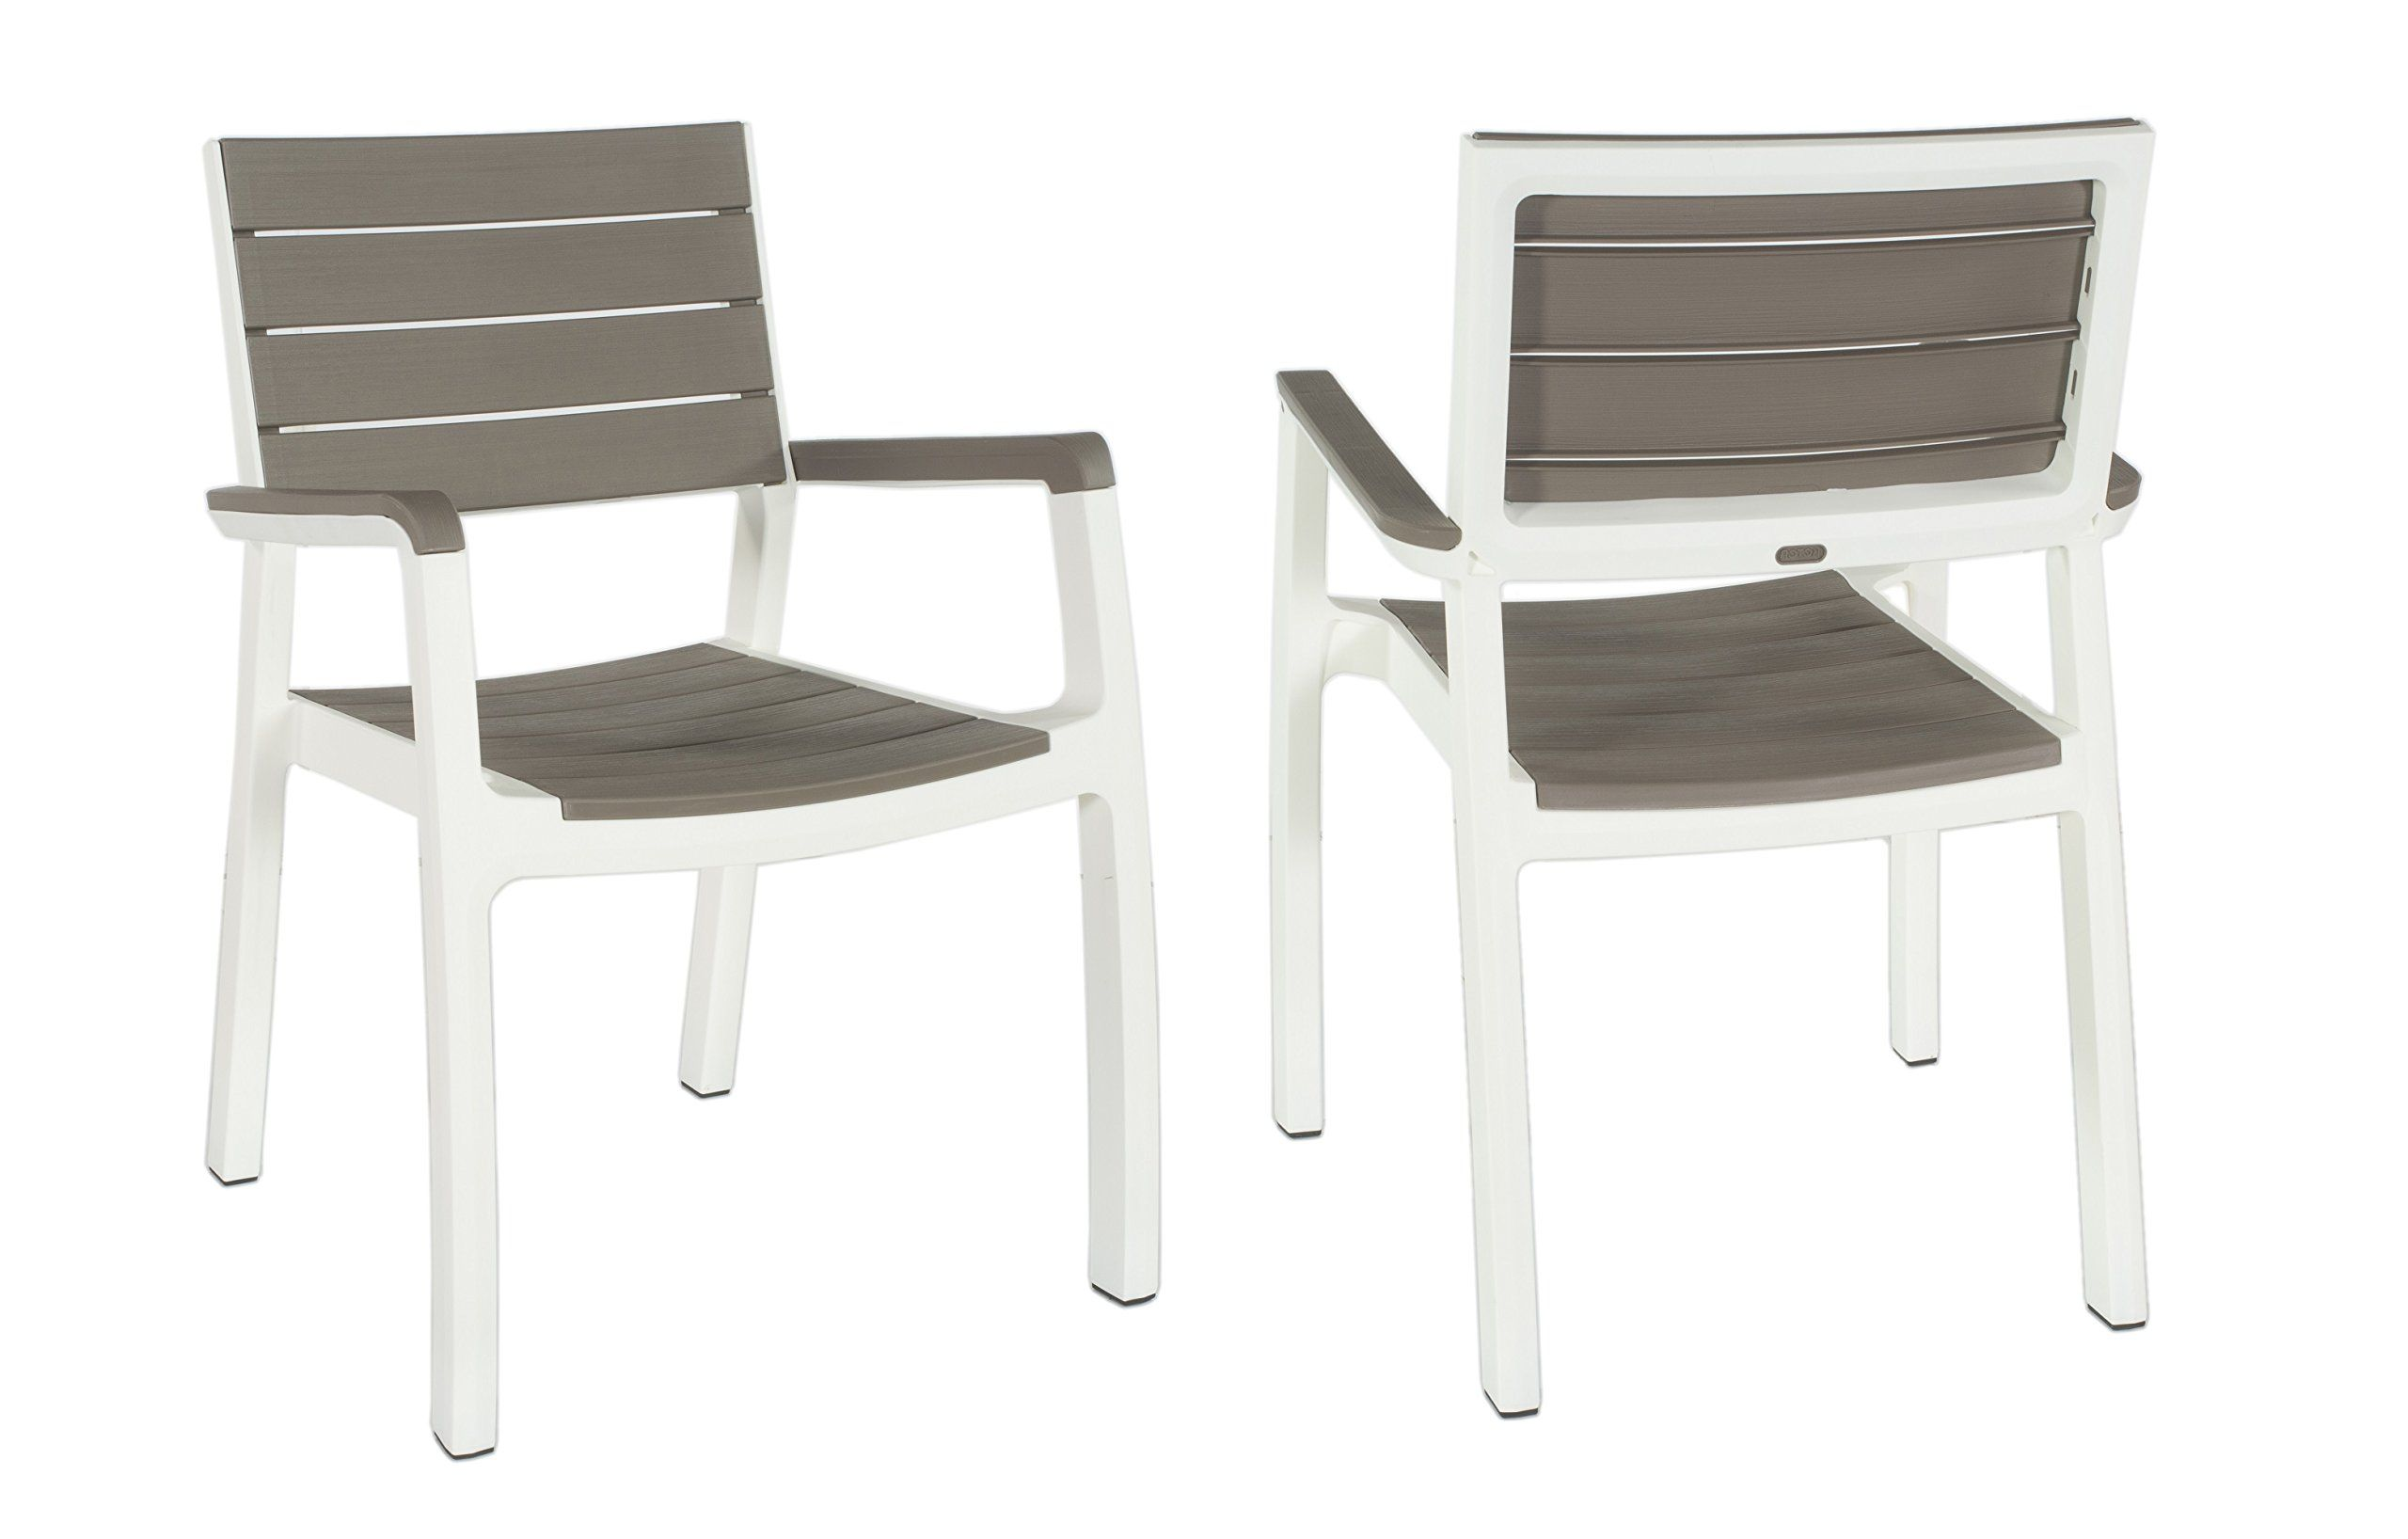 Keter Harmony Indoor Outdoor Stackable Patio Furniture Armchair Set Modern Wood Style Finish Pack Of 2 Chairs Want To Know More Click On The Image